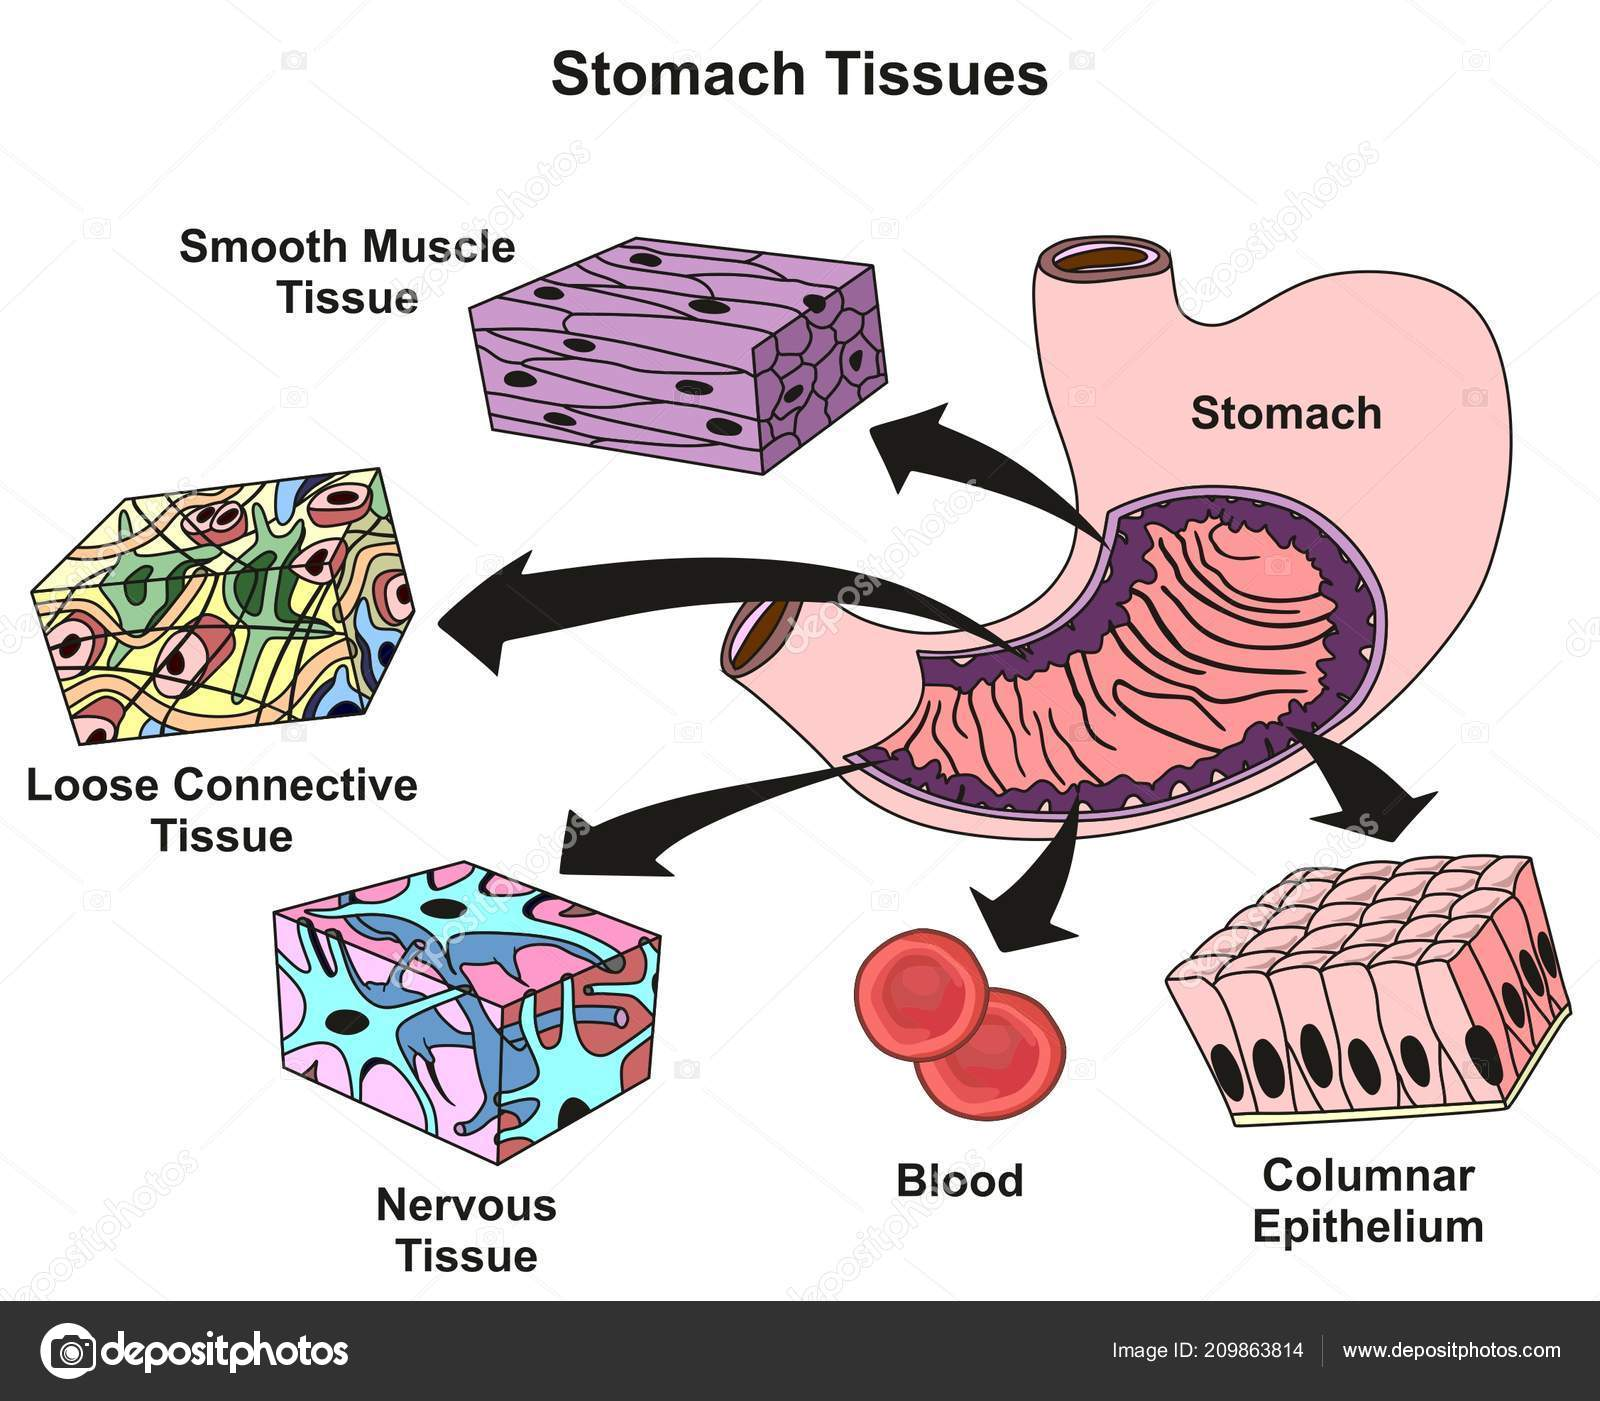 Smooth Muscle Tissue Diagram